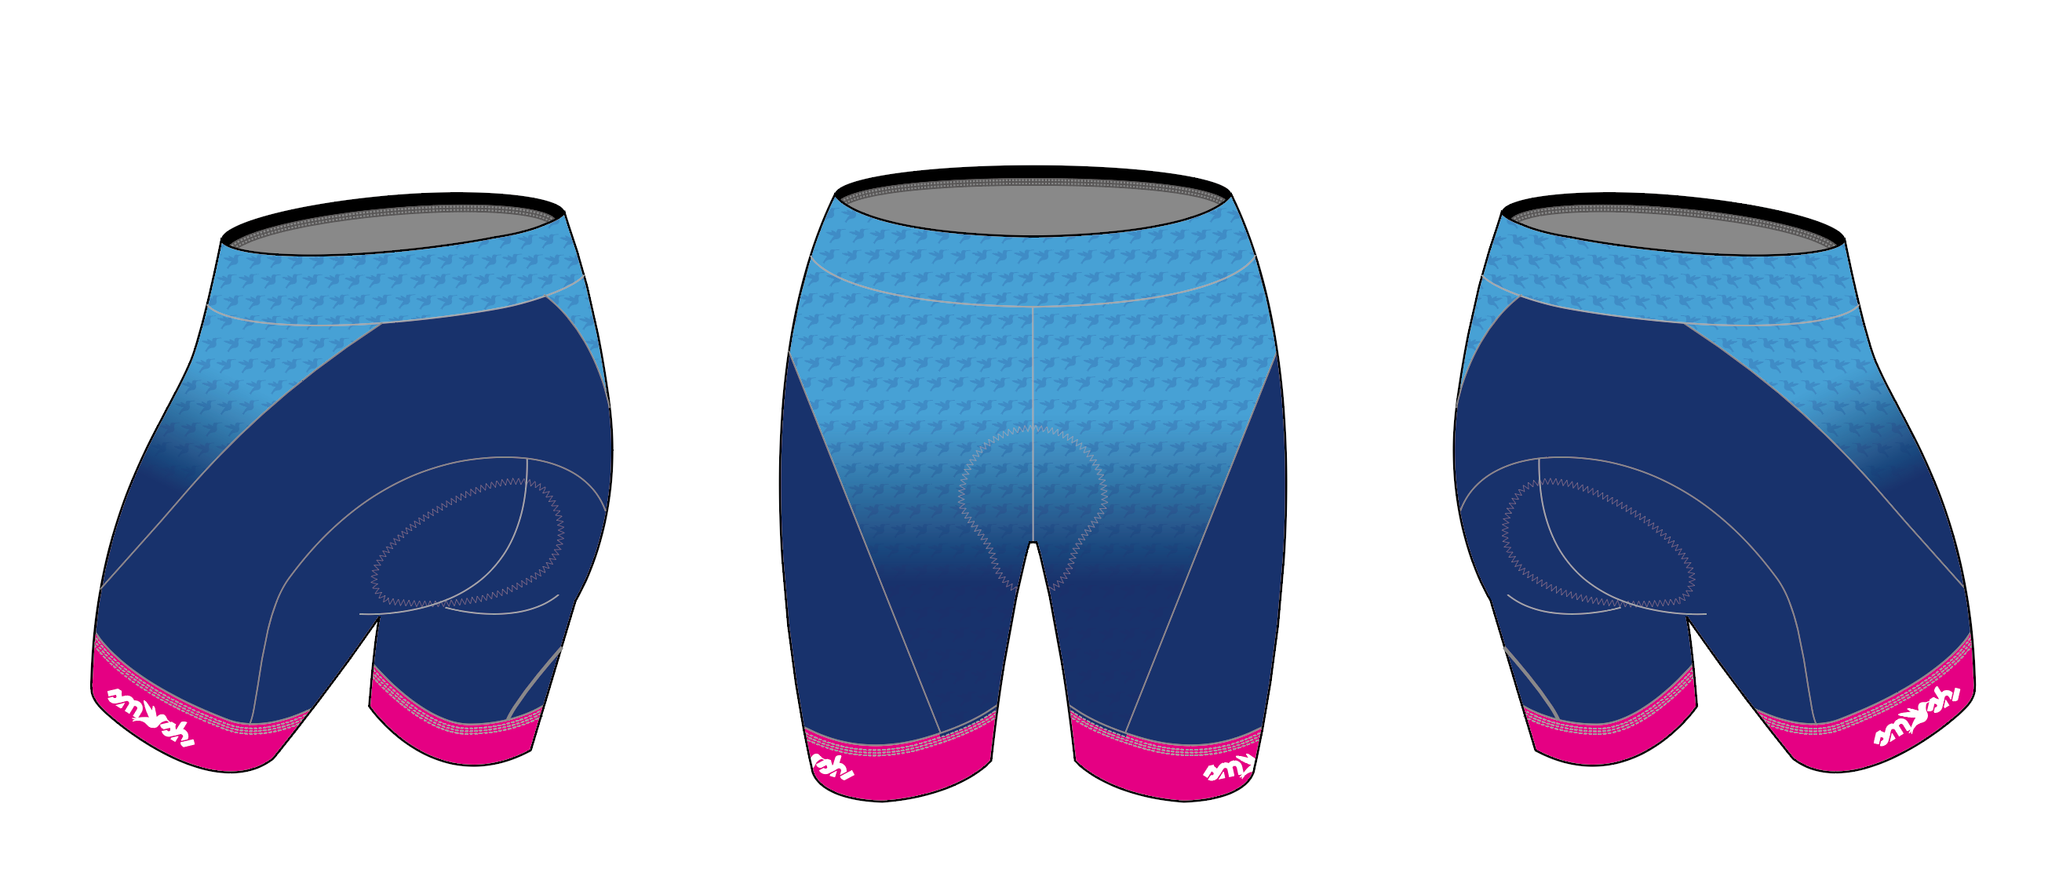 Boomerang Women's Cycle Shorts